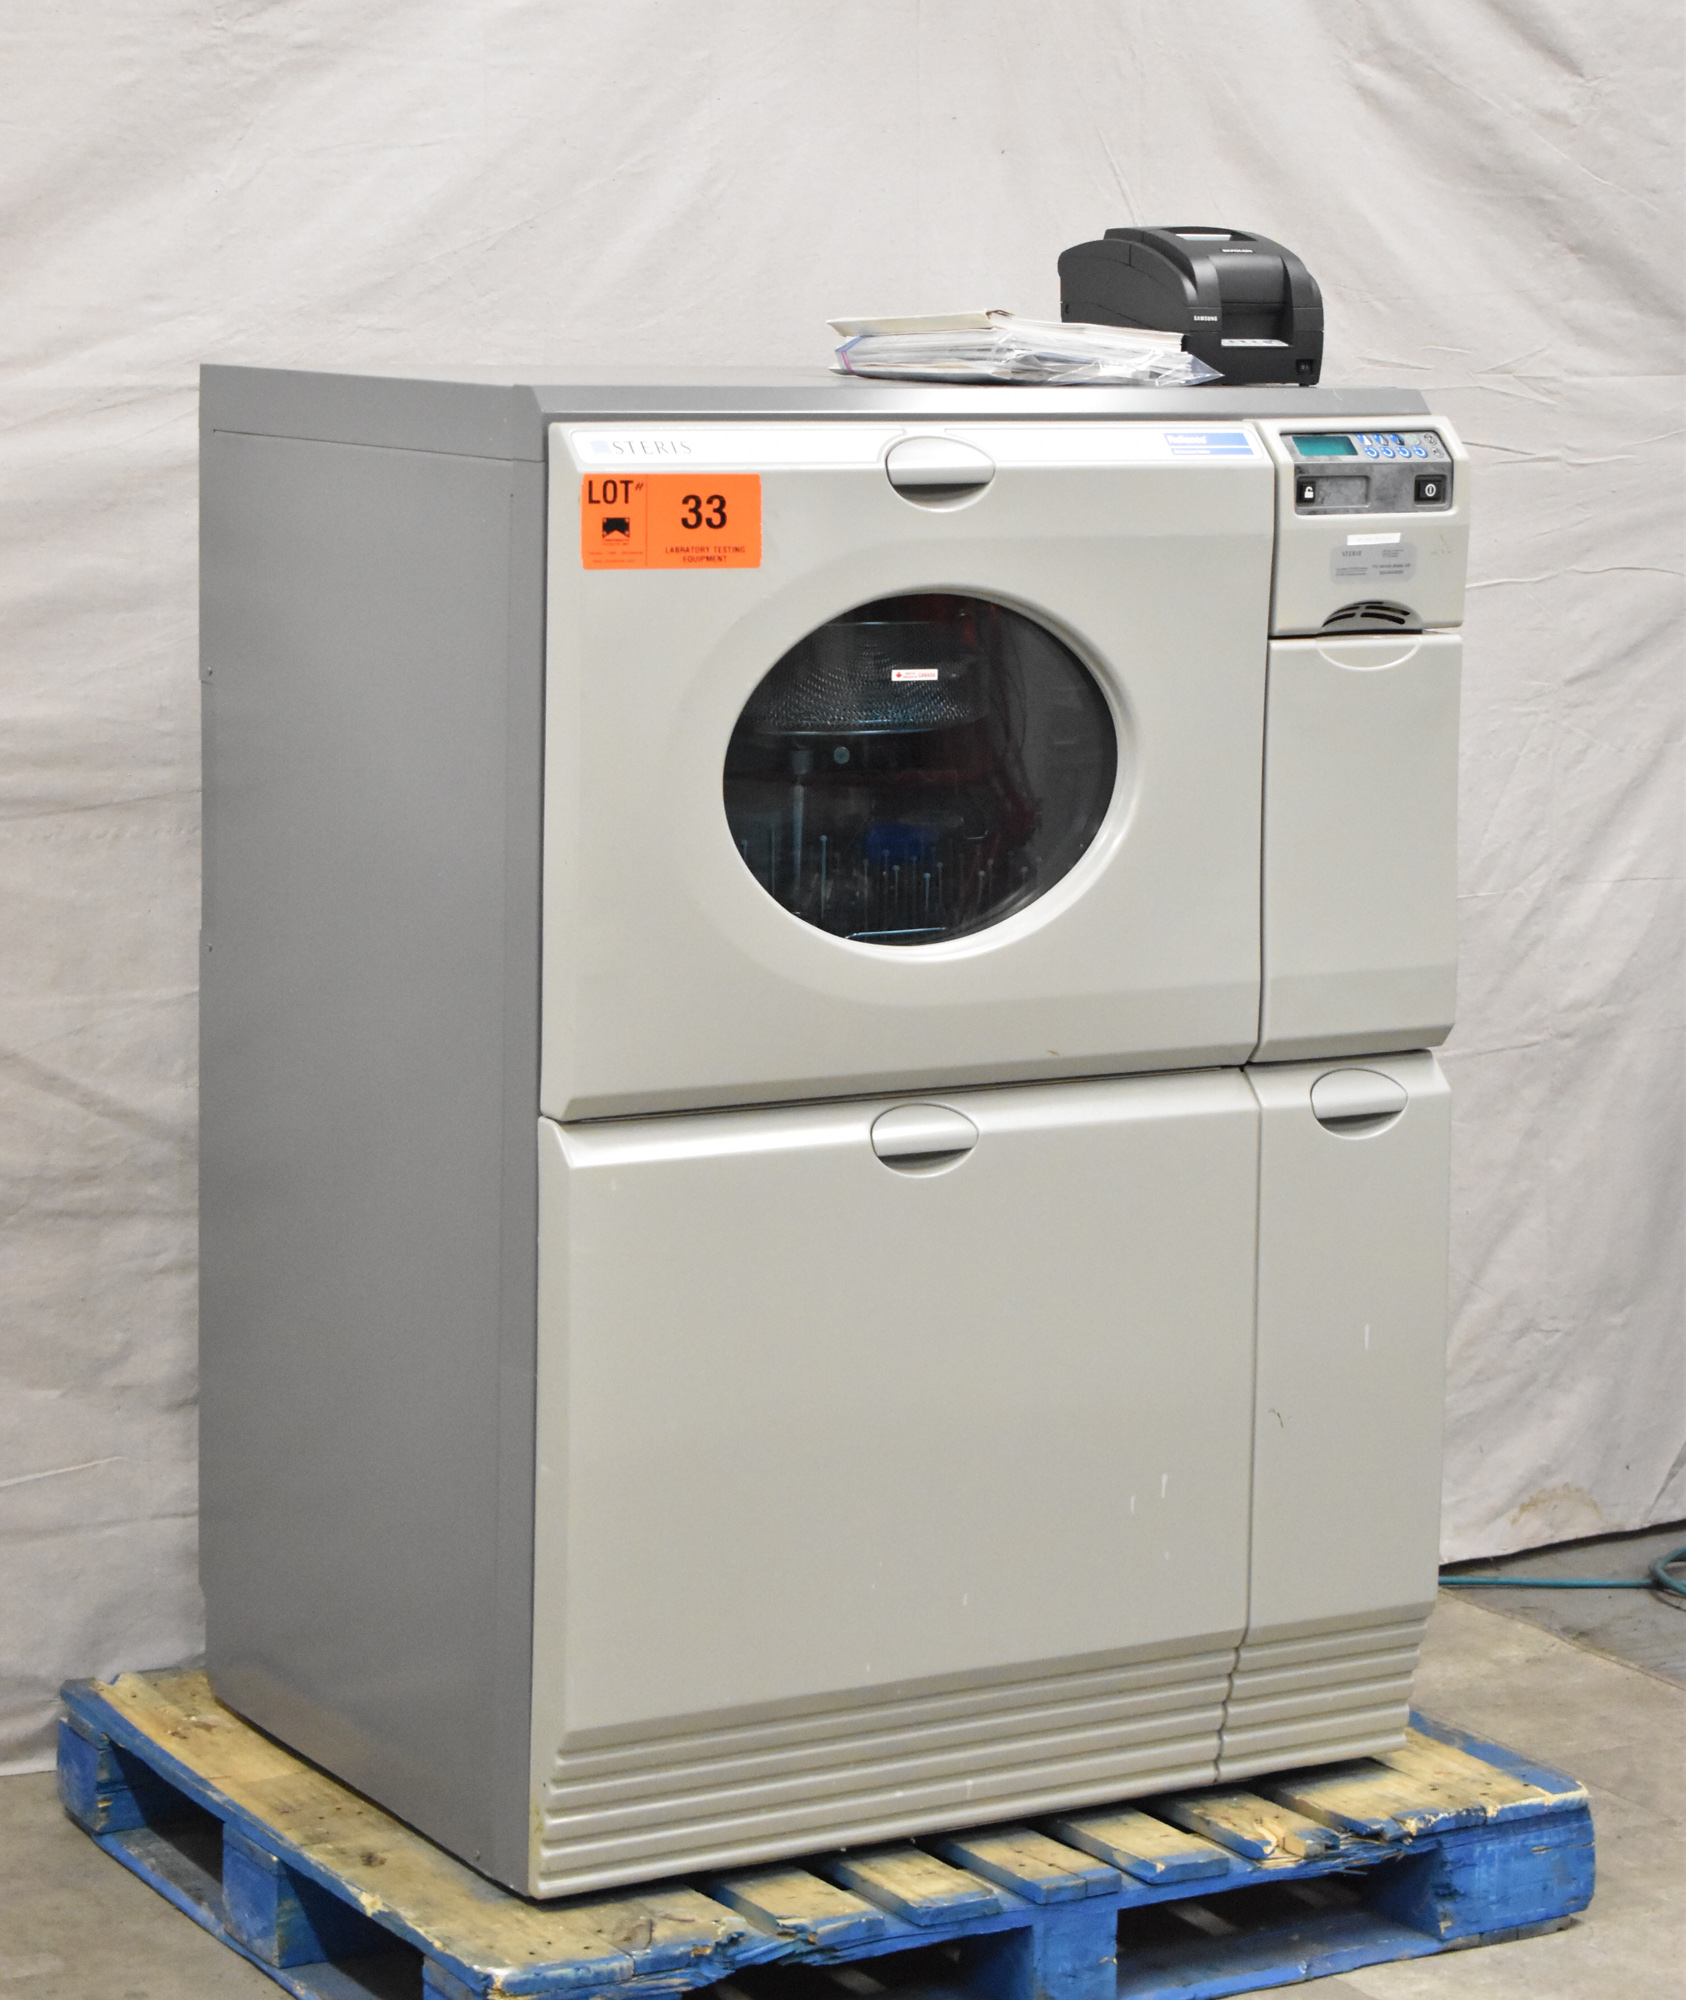 STERIS RELIANCE 250 ULTRA WASH PLUS LABORATORY GLASSWARE WASHER WITH DIGITAL TOUCH SCREEN CONTROL, - Image 2 of 7